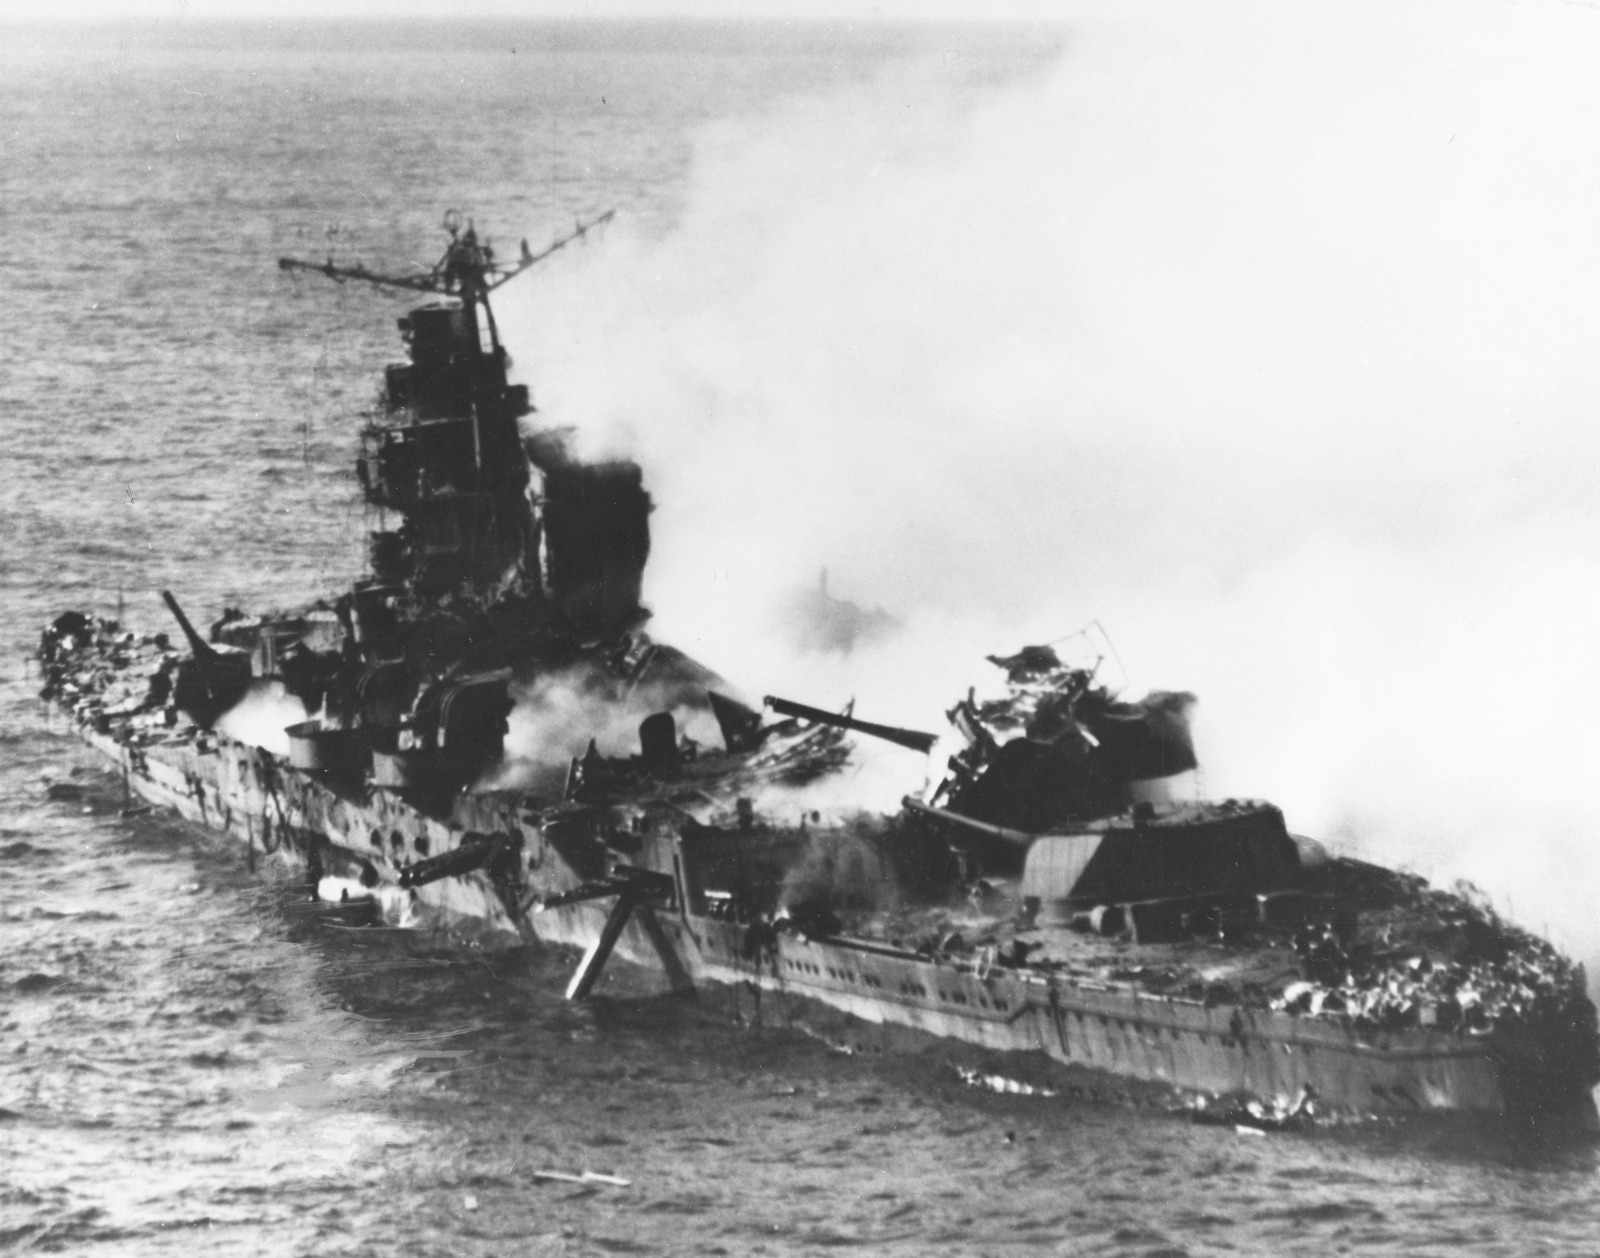 Japan Lost World War II at the Battle of Midway (And China Is Taking